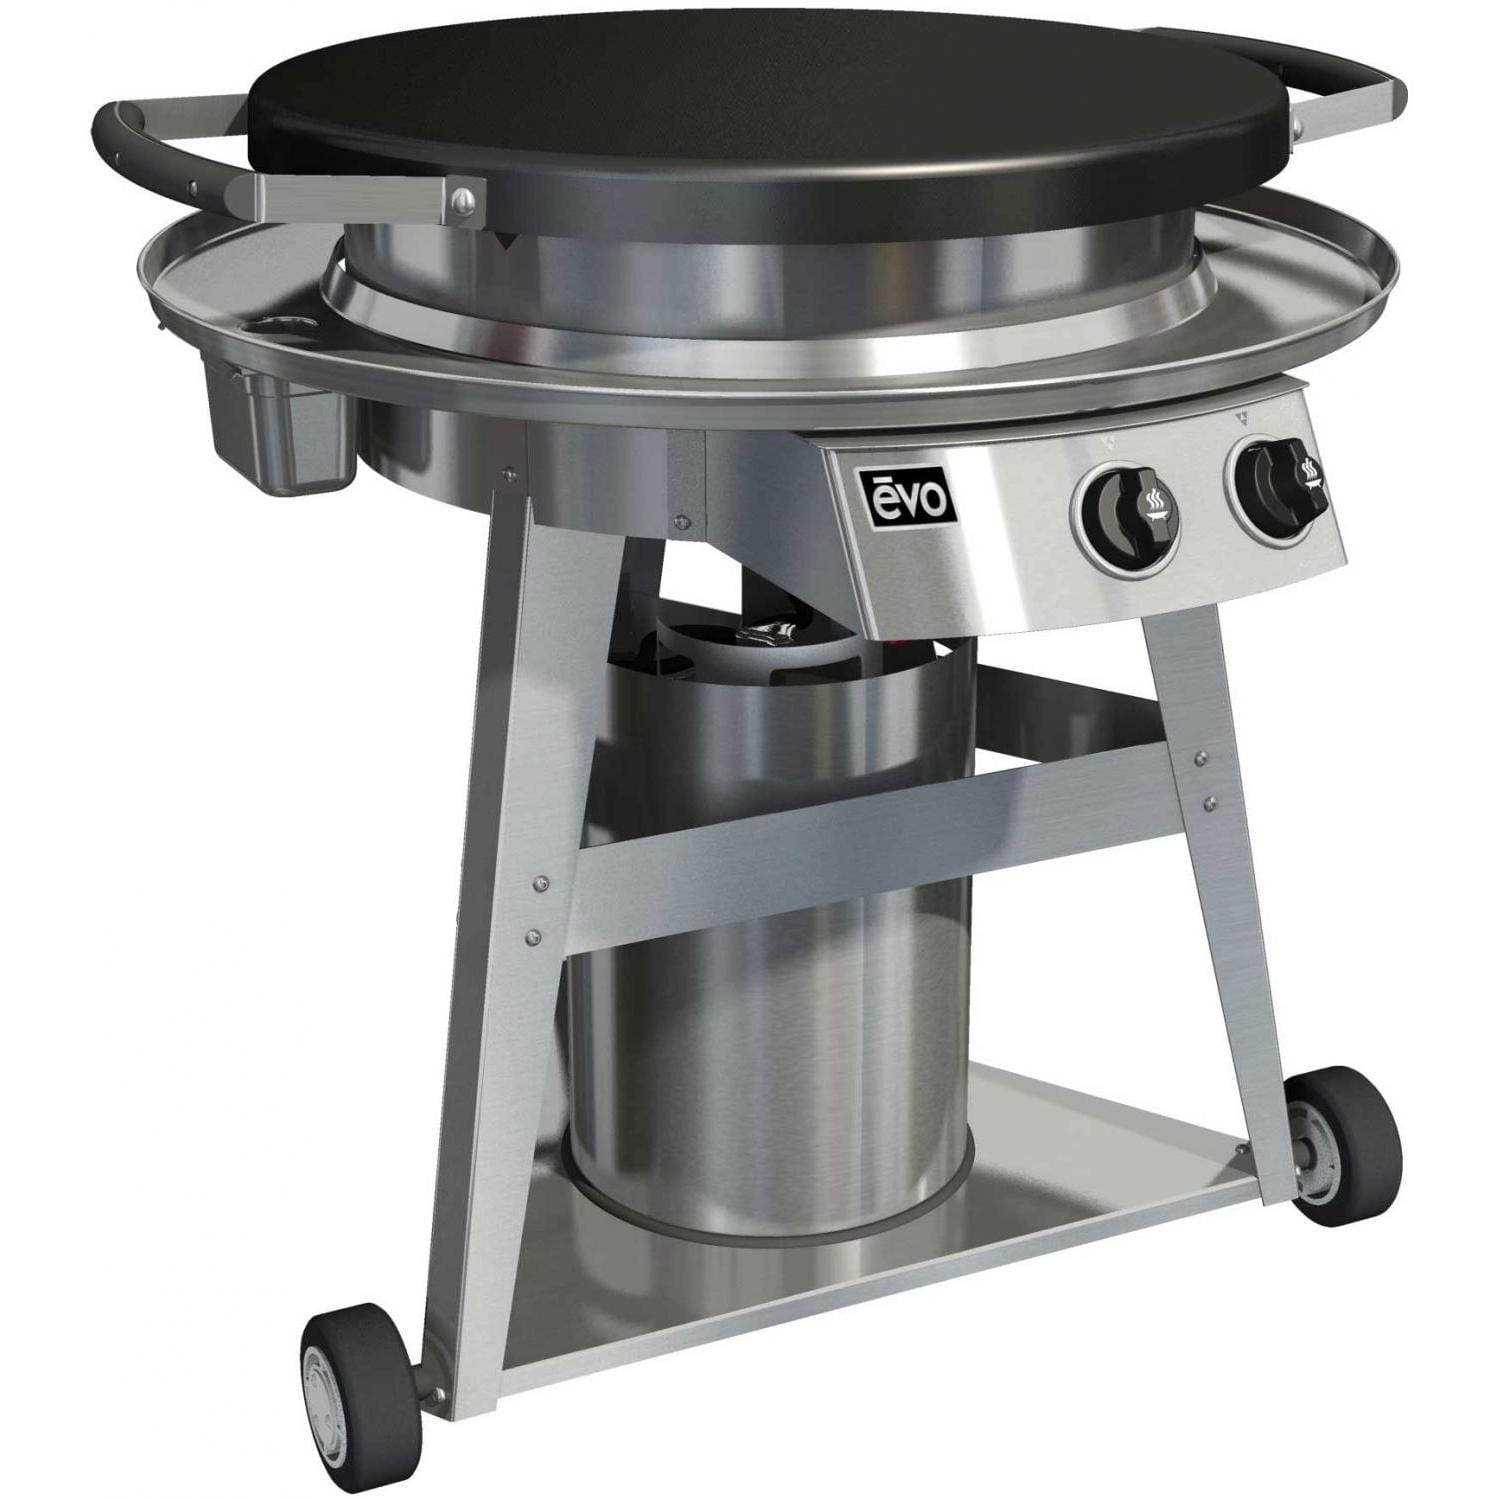 Evo Professional Wheeled Cart 30-Inch Coated Flat-Top Gas Grill